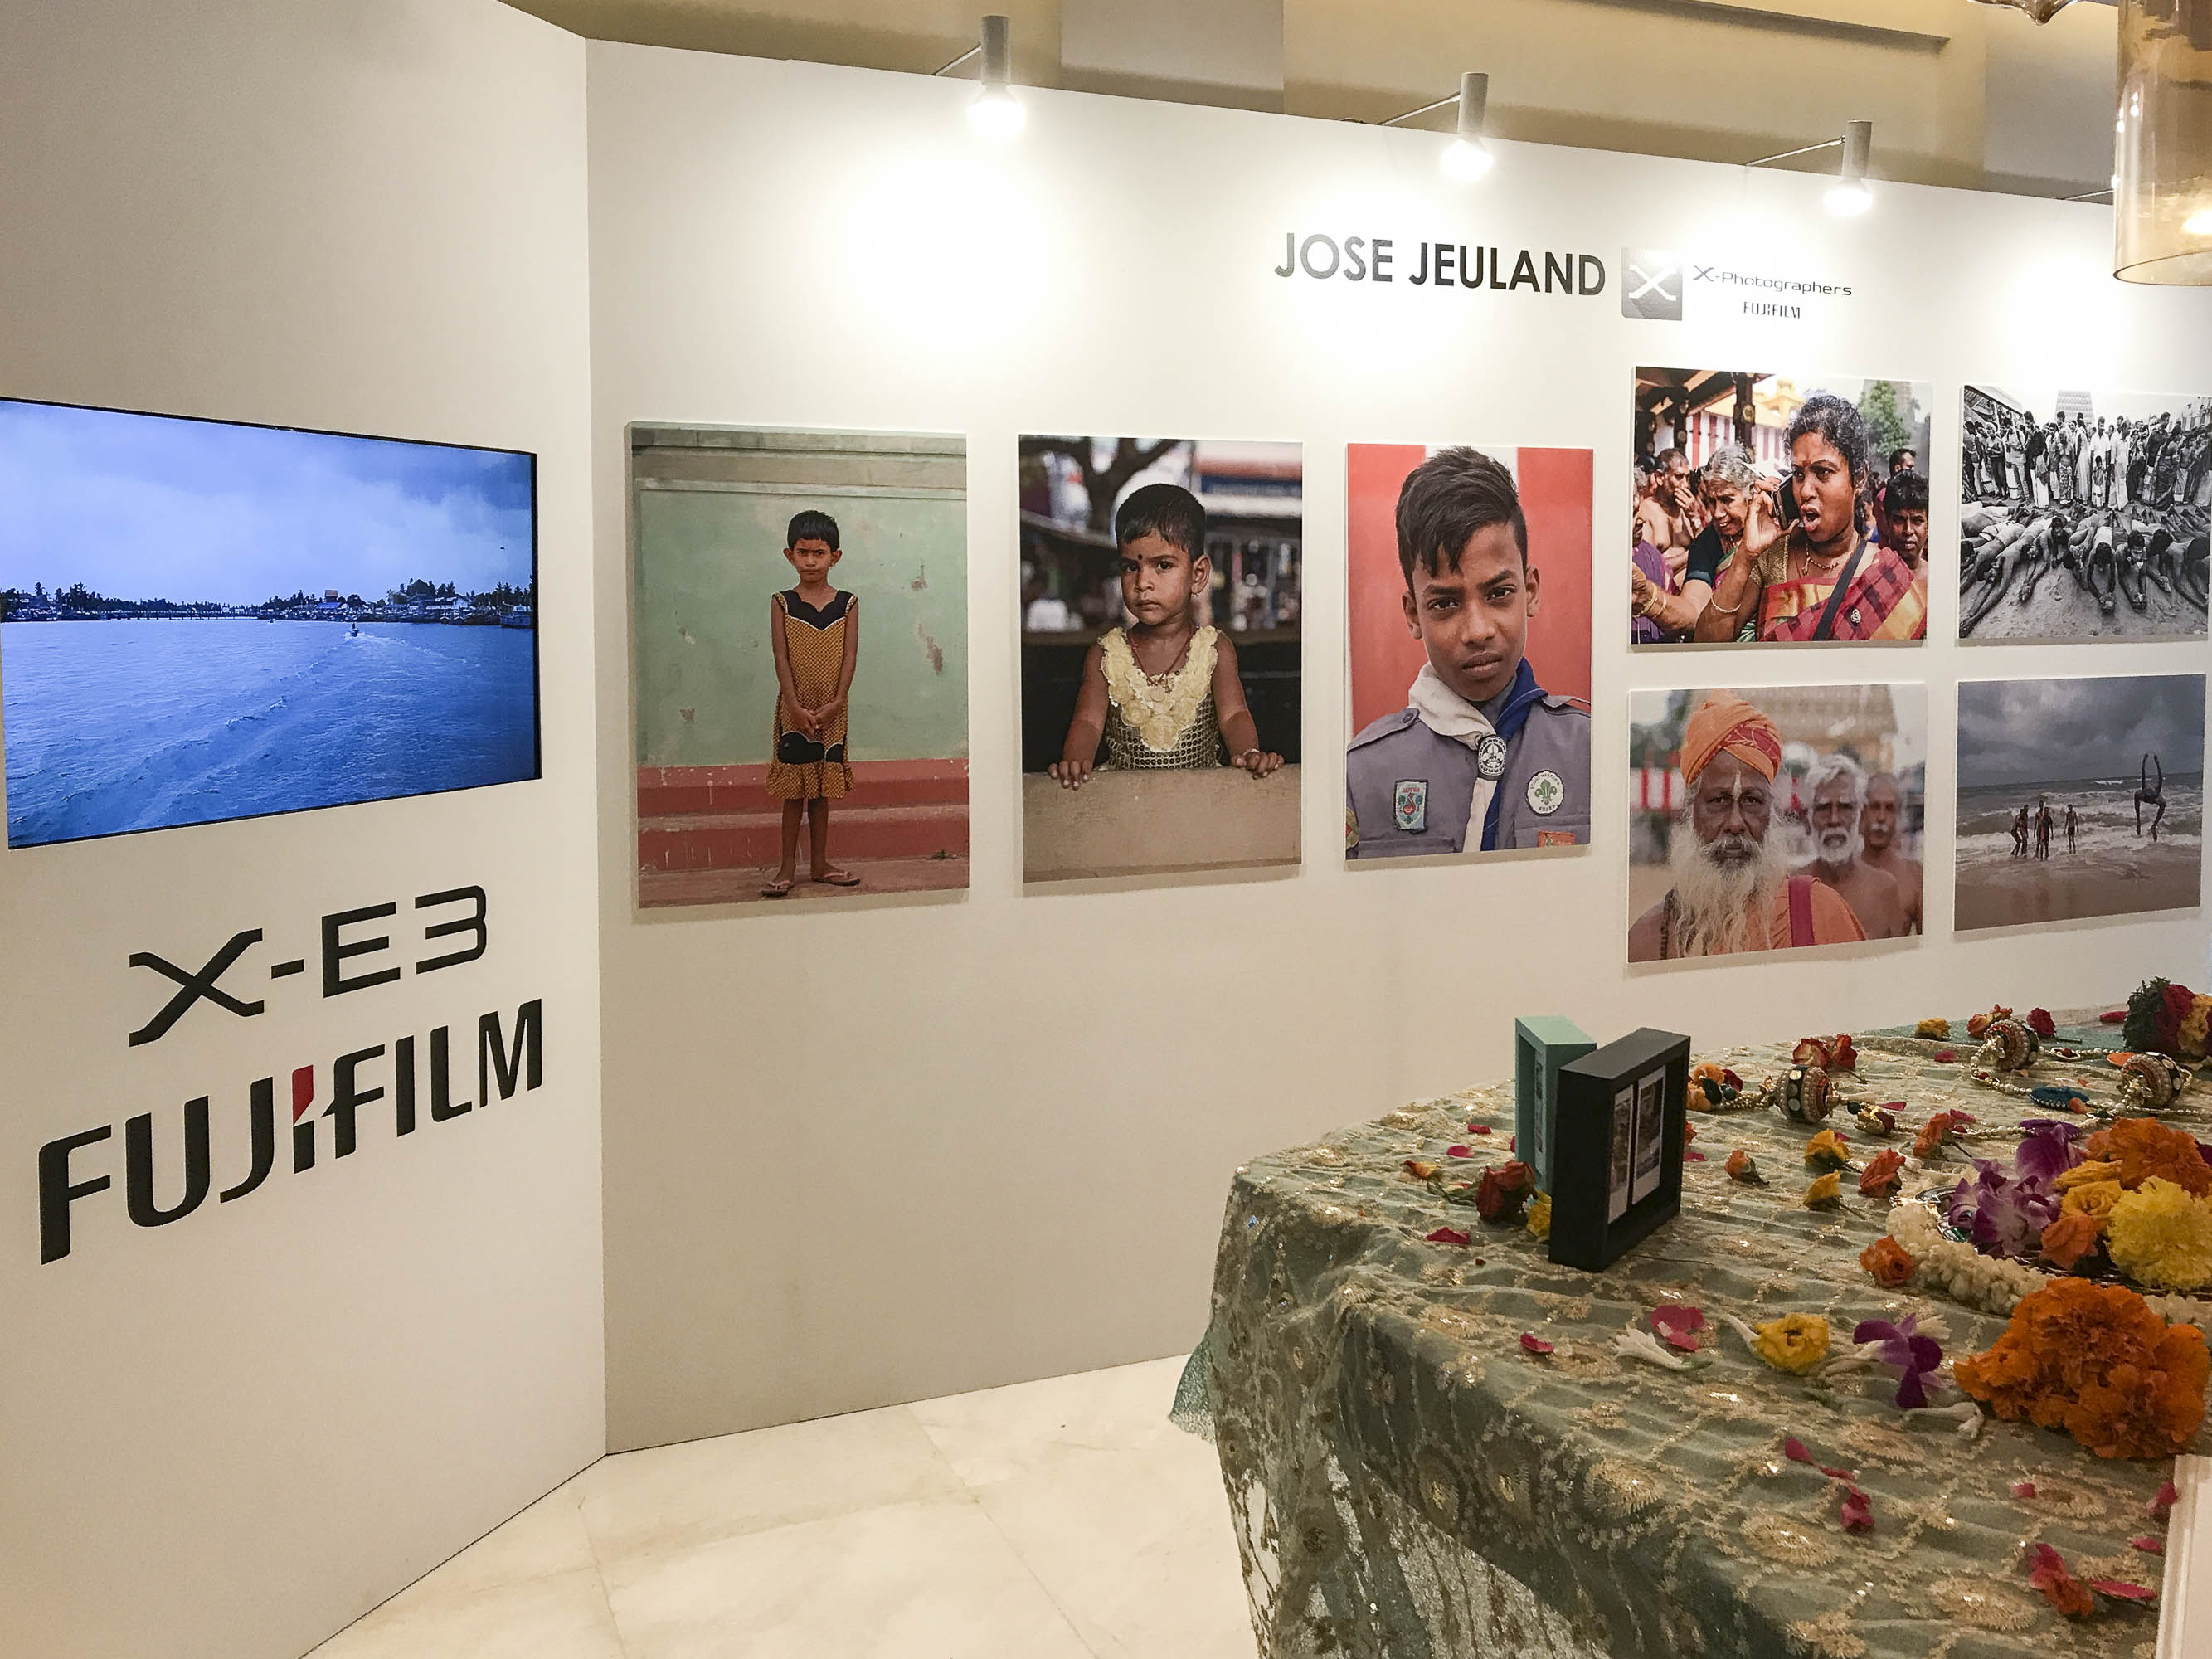 FUJIFILM X-E3  launch - Jose Jeuland